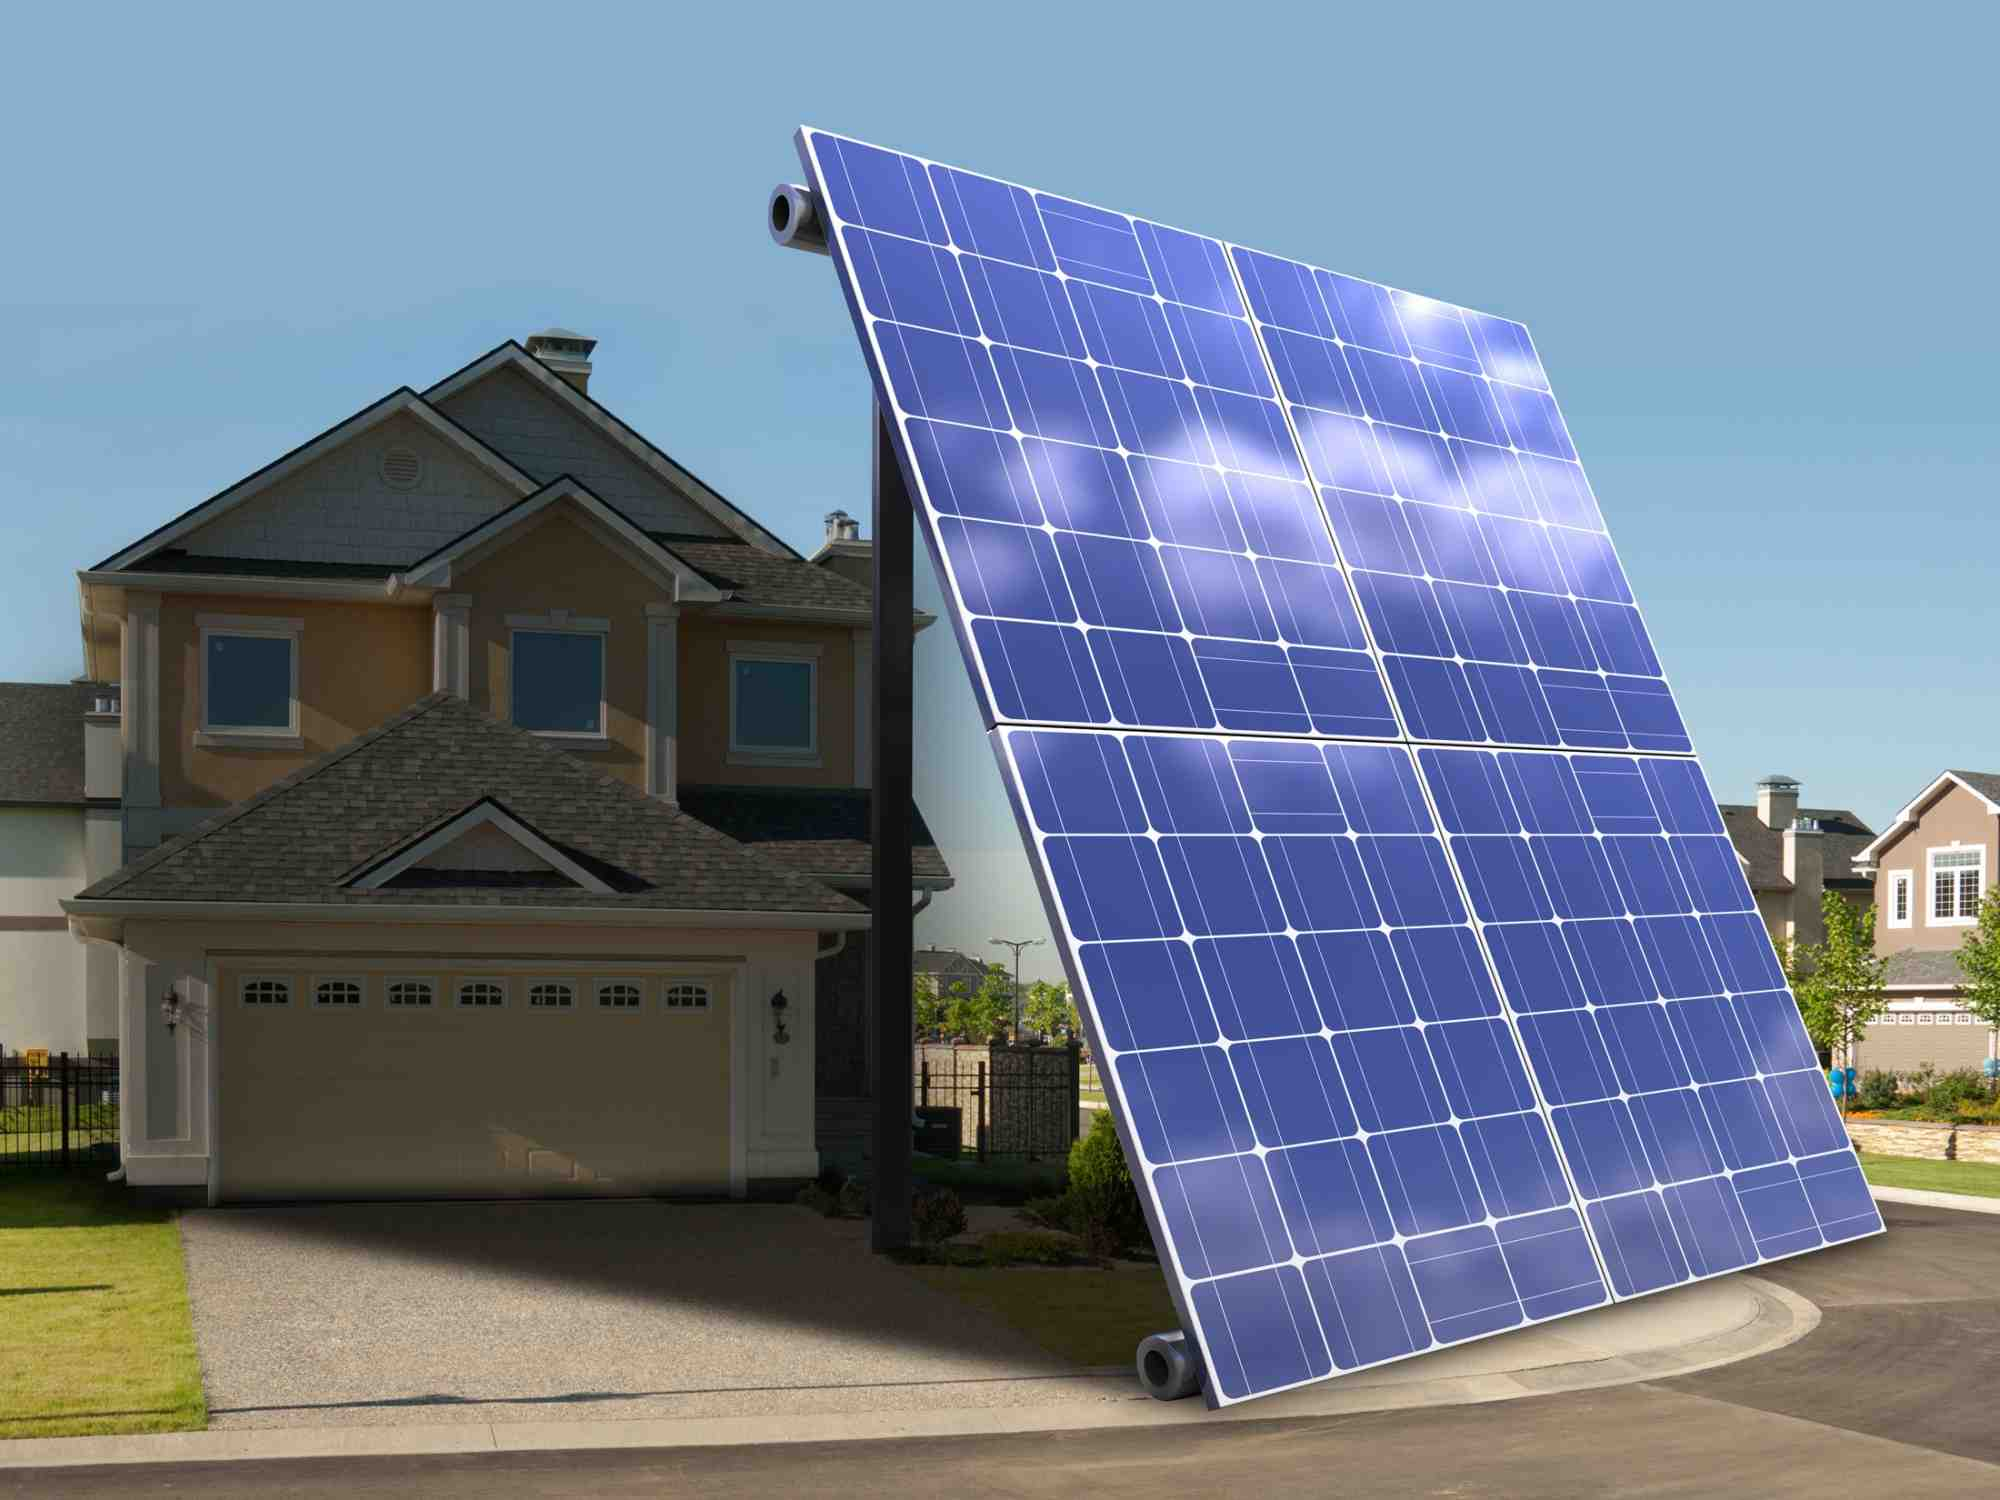 What banks give solar loans?